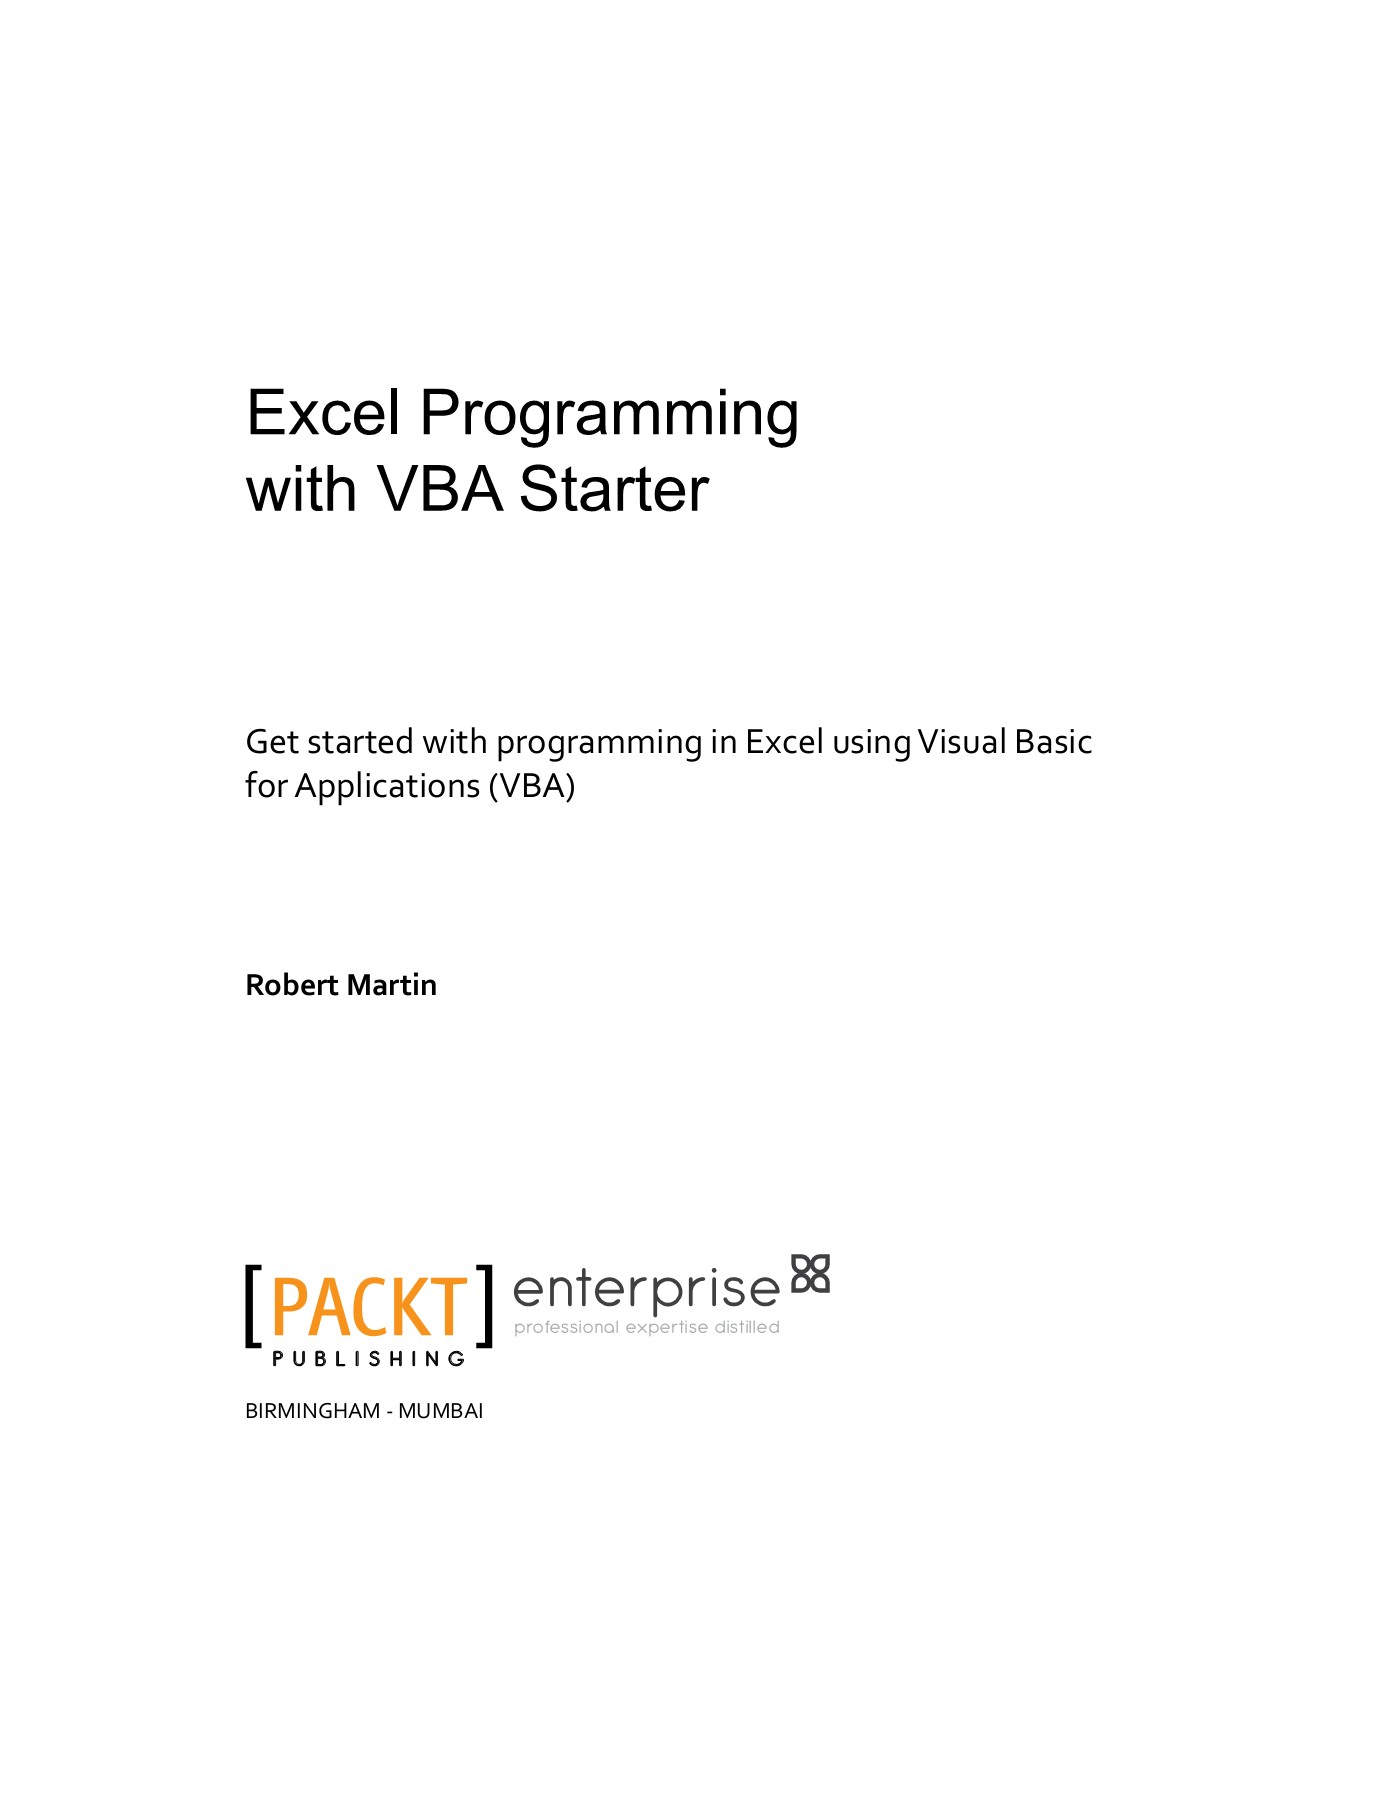 Excel Programming with VBA Starter Pages 51 - 61 - Text Version